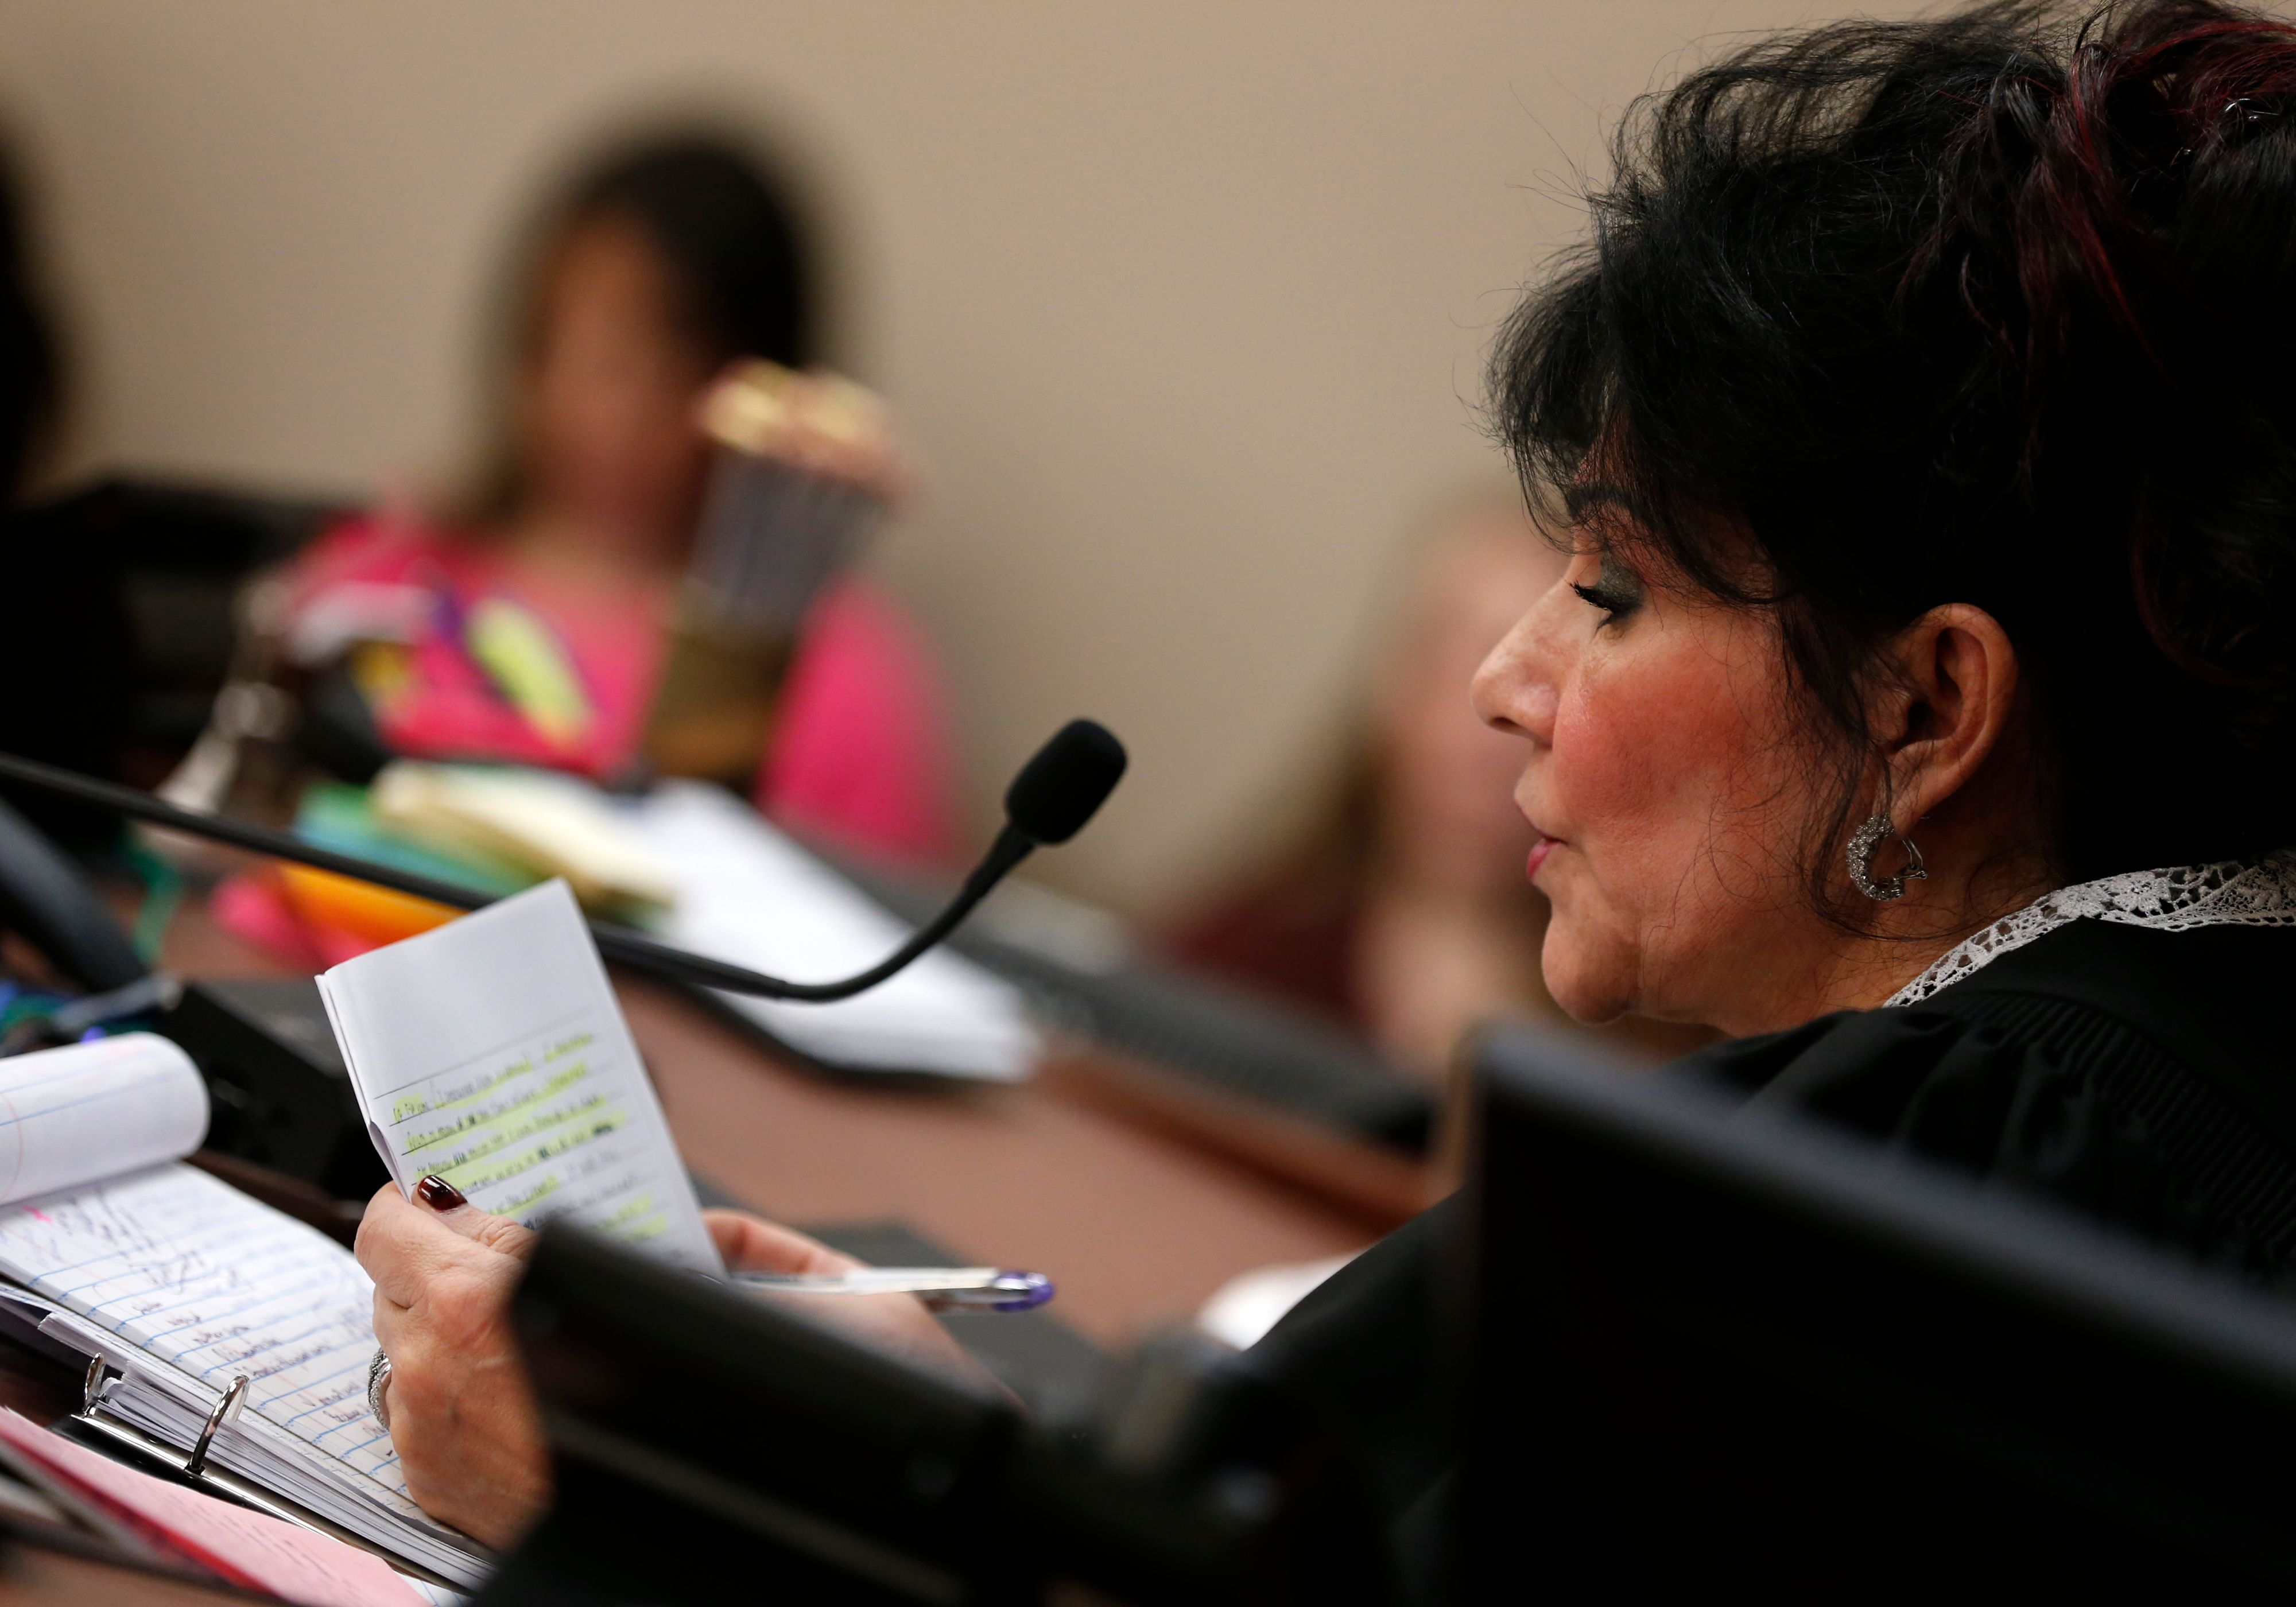 Judge Rosemarie Aquilina reads a letter from former Michigan State University and USA Gymnastics doctor Larry Nassar during the sentencing phase of his trial, January 24.